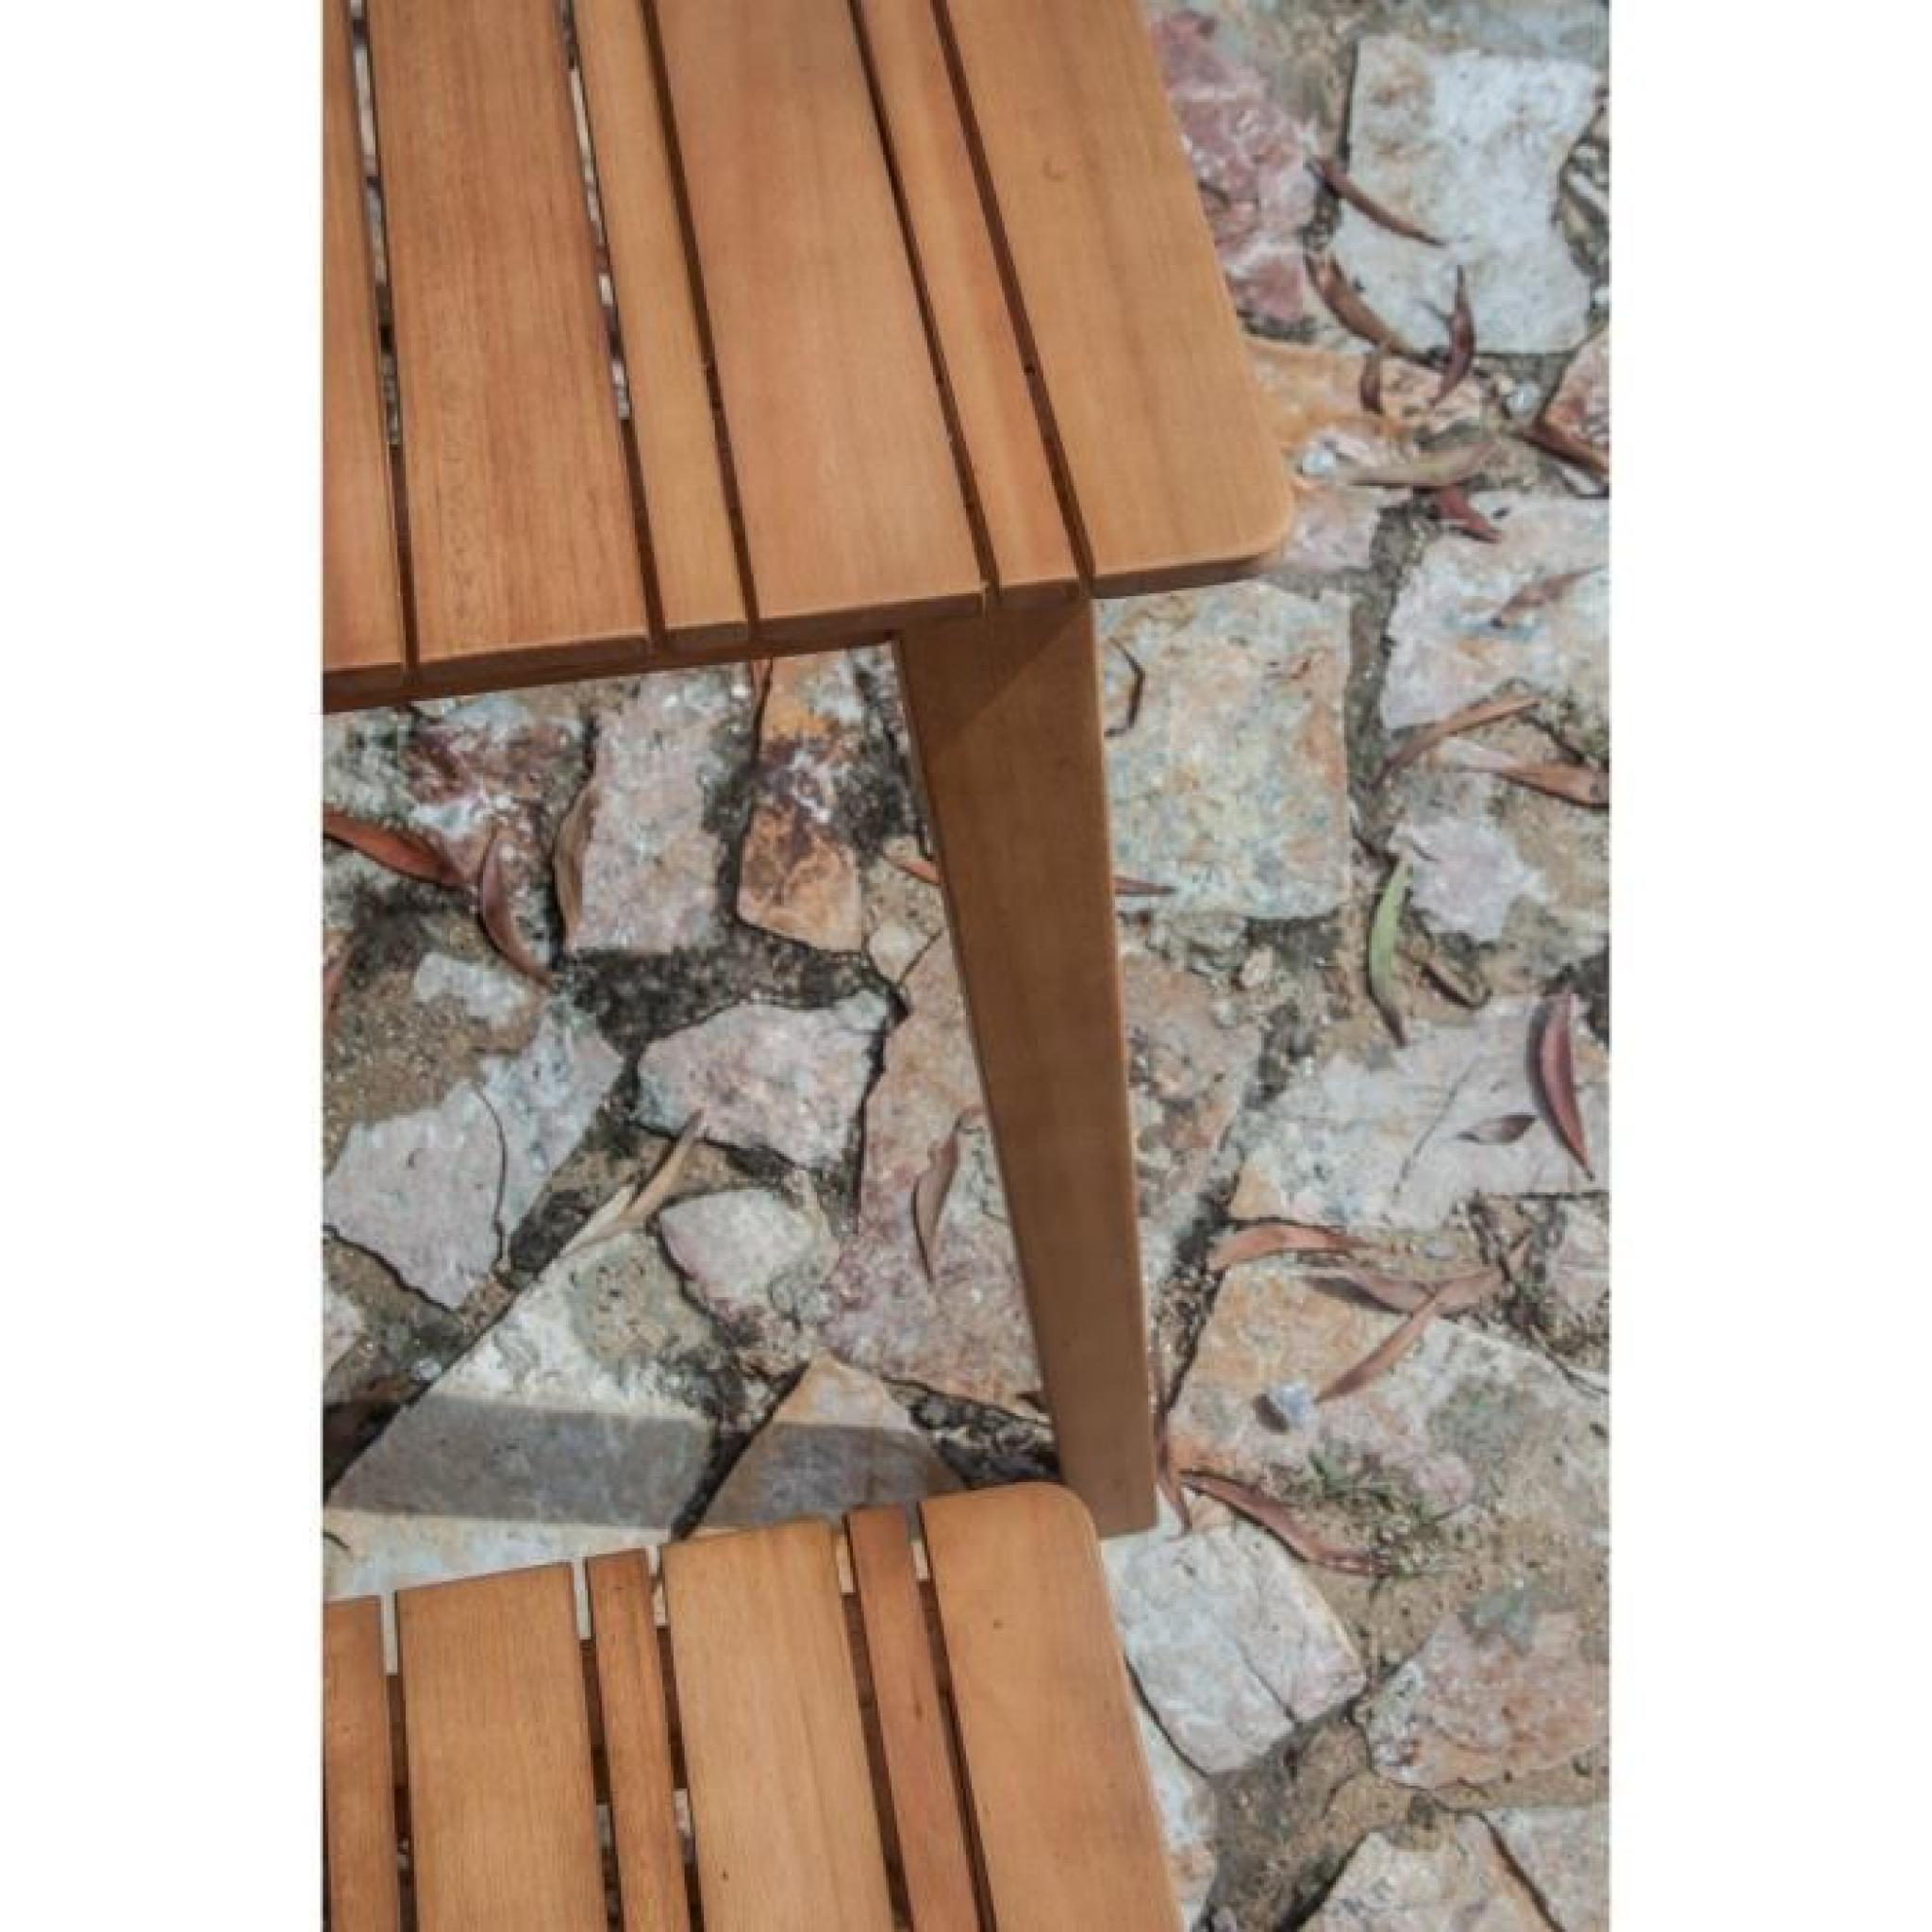 CAP Ensemble de jardin en bois d\'Eucalyptus 4 places - Marron ...